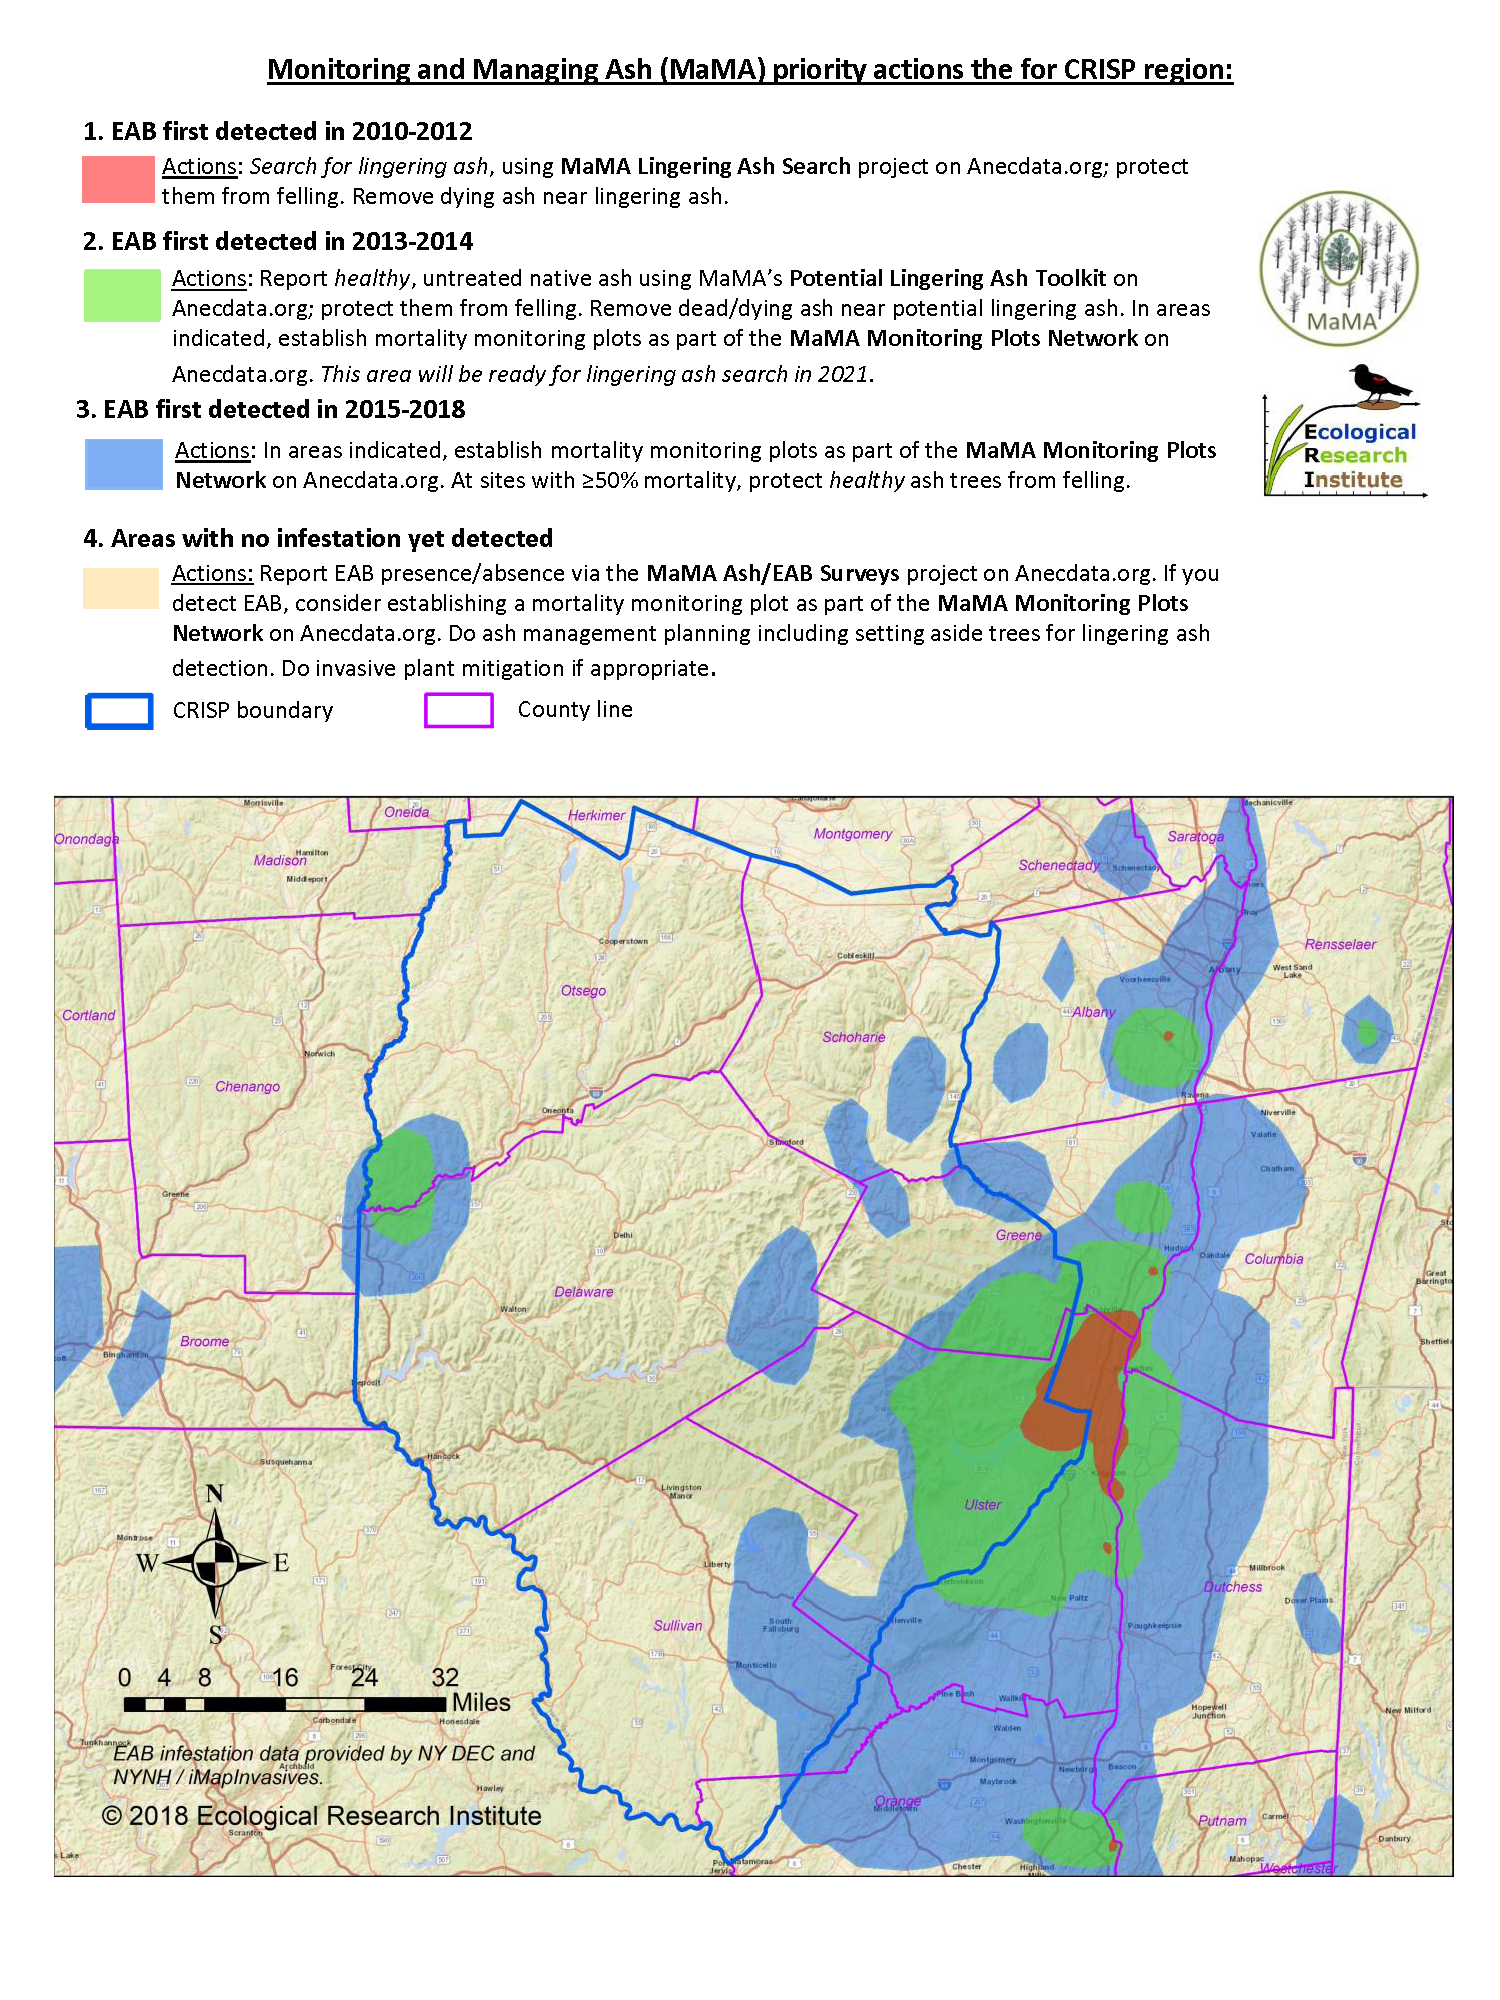 MaMA in the Catskills – Monitoring and Managing Ash (MaMA) In Catskill Region Of New York Map on map of mountains in ny, cities of catskill new york, map of catskills towns, oak hill new york to catskill new york, northern region of new york, catskill mountains new york, map of catskill hudson and germantown, map of catskill ny area,